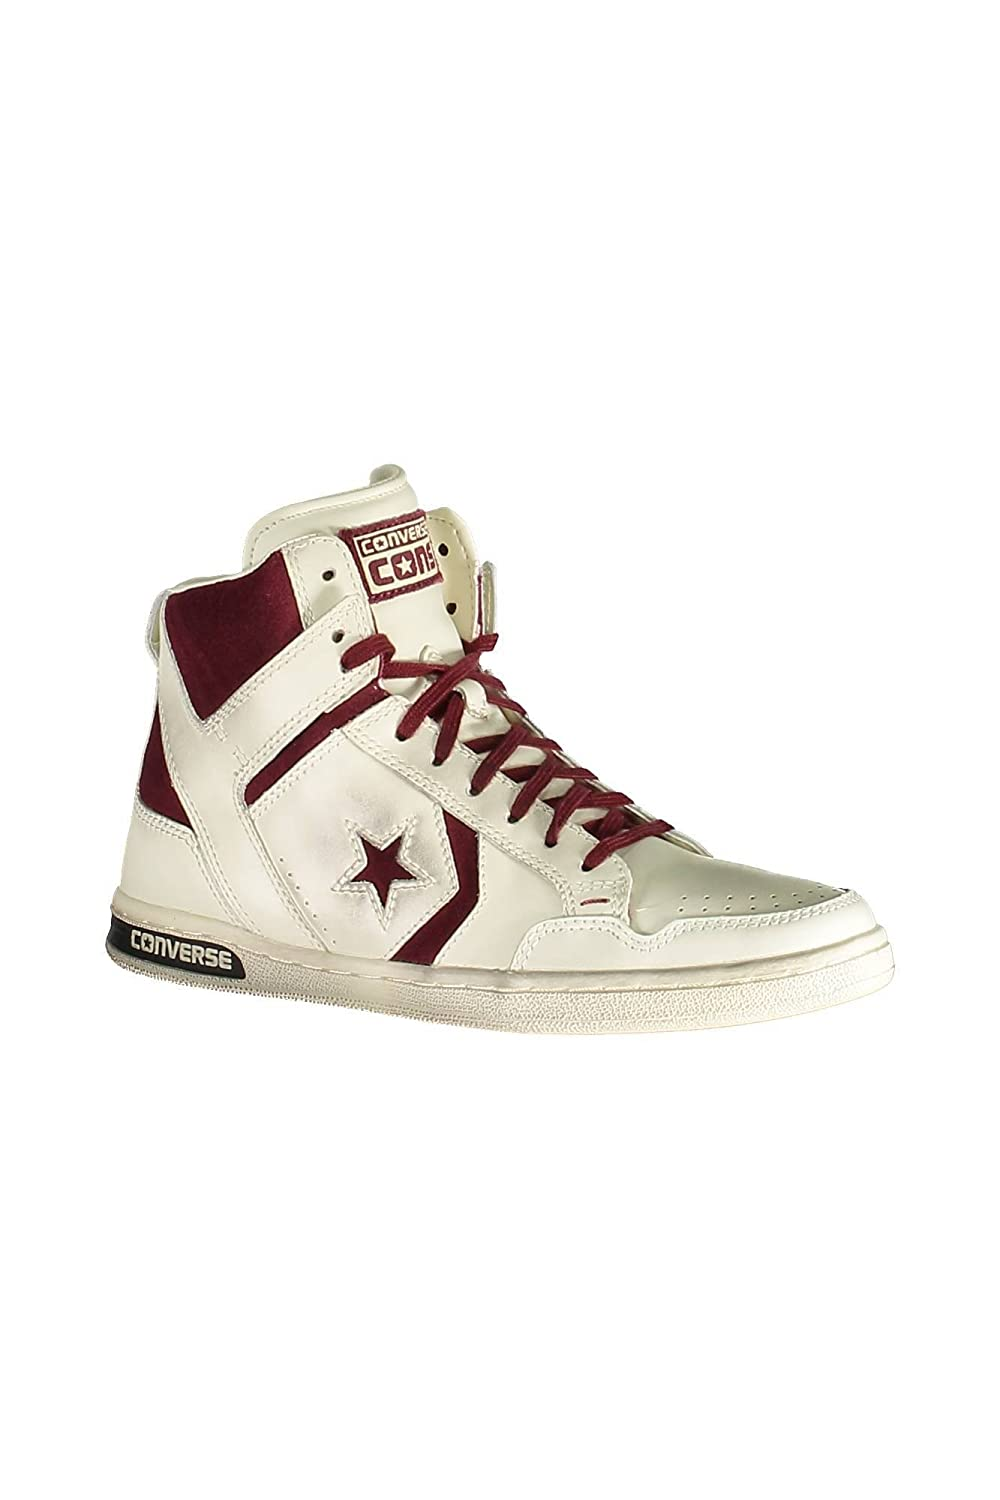 converse weapon hi